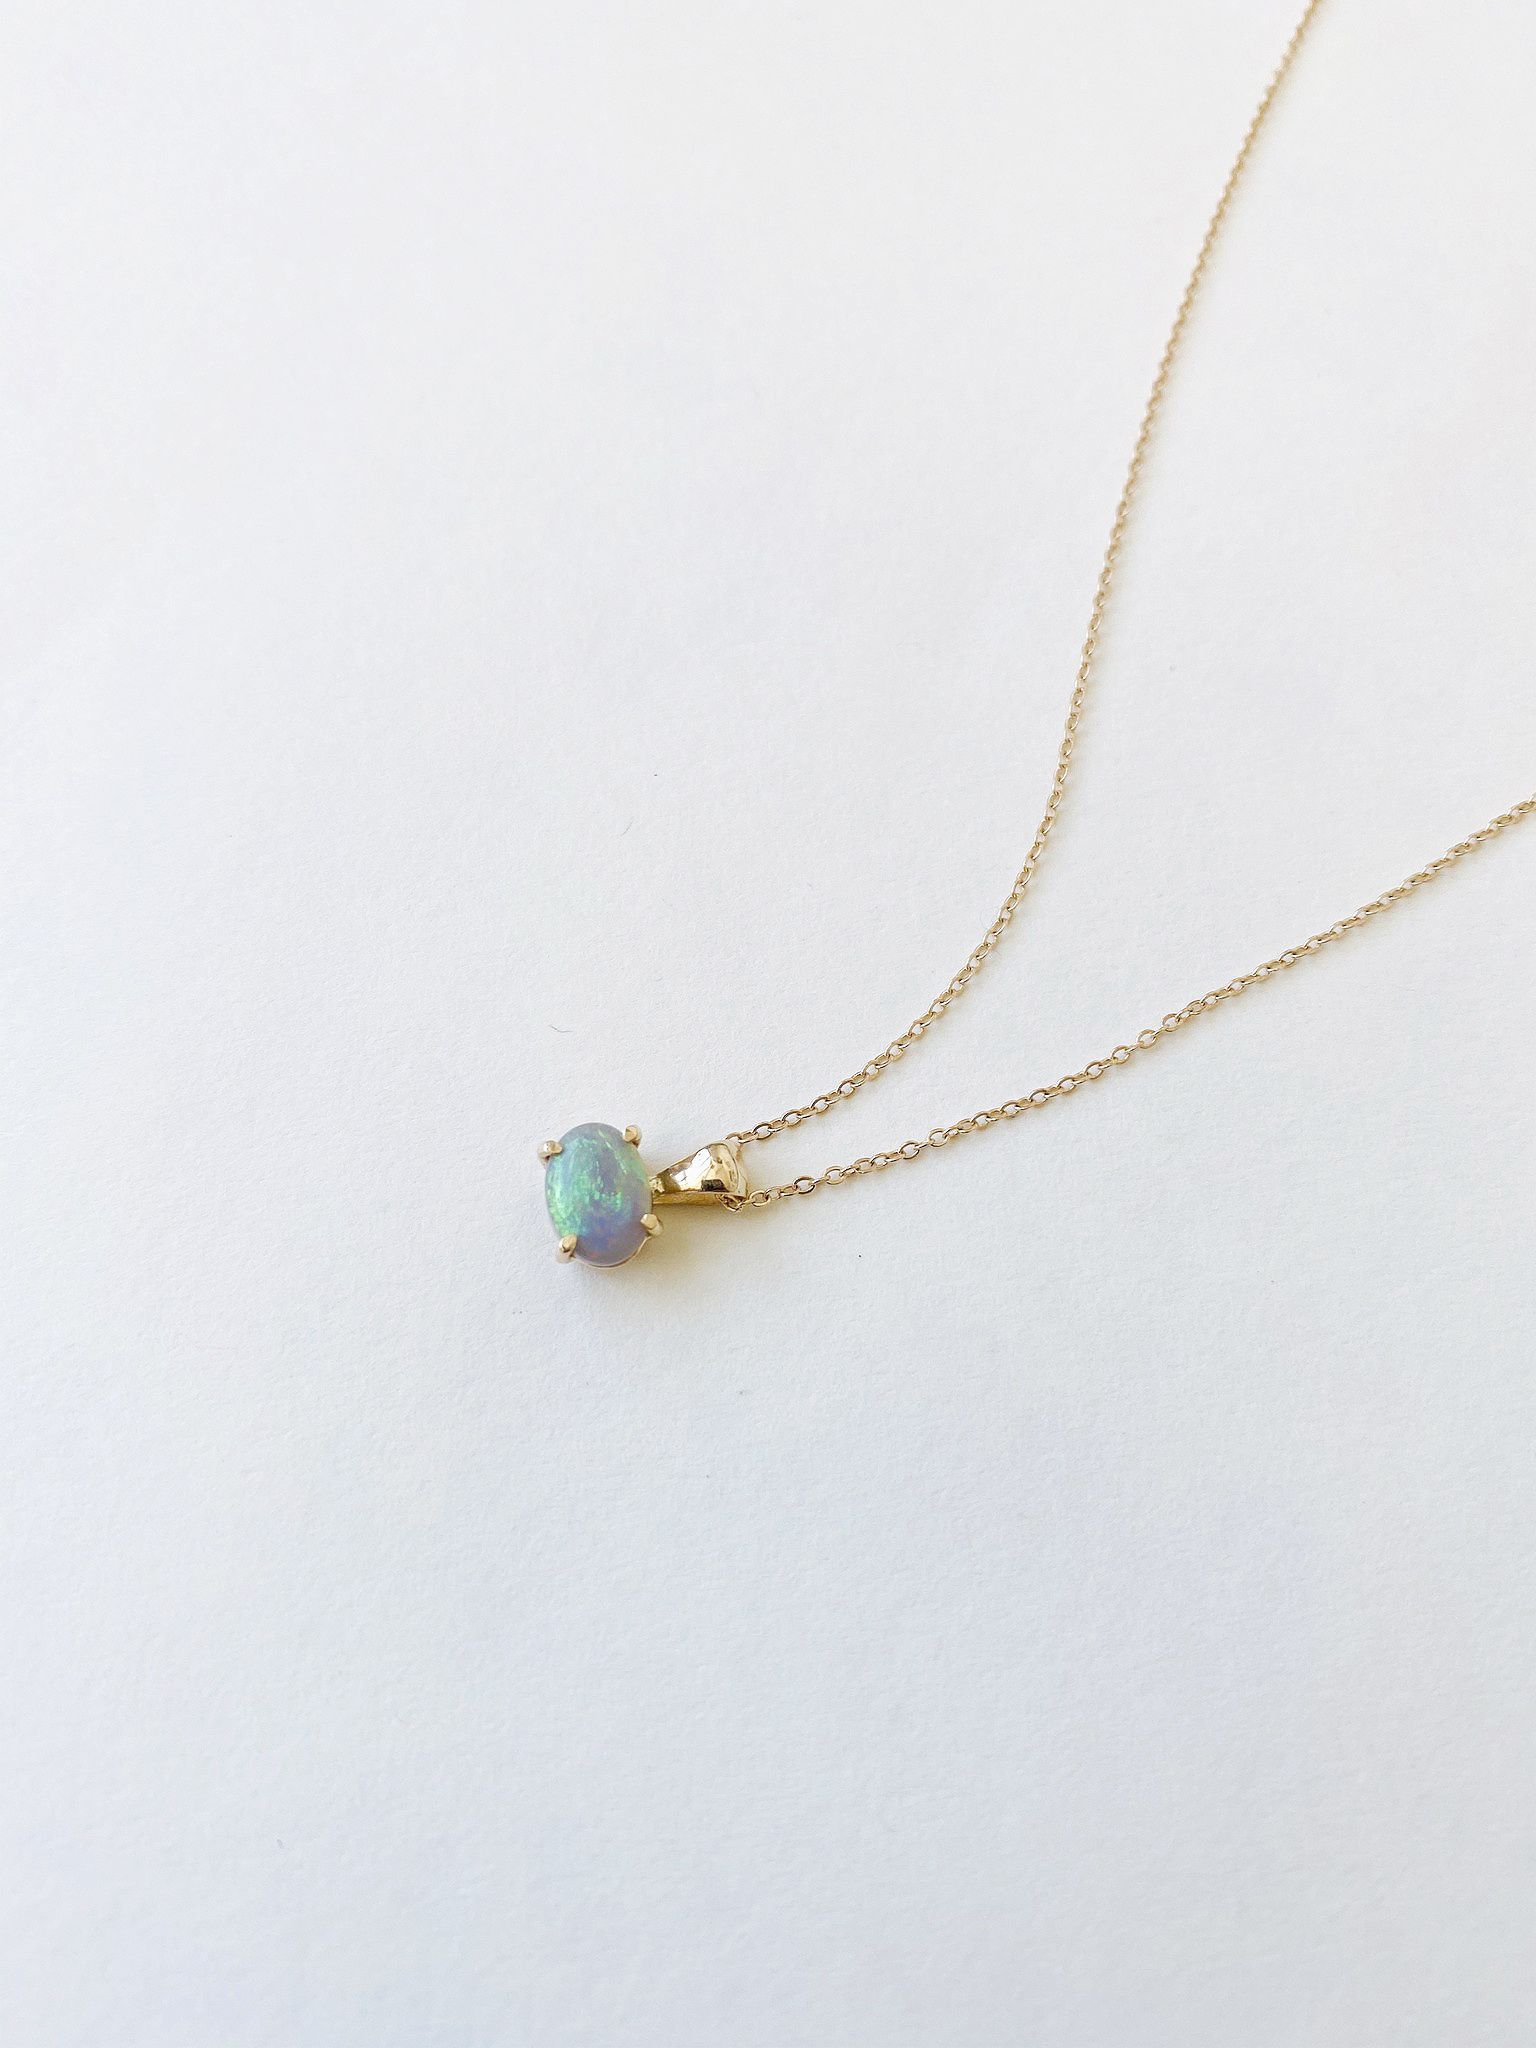 Kindred Row Kindred Row Australian Opal Necklace 14Kt